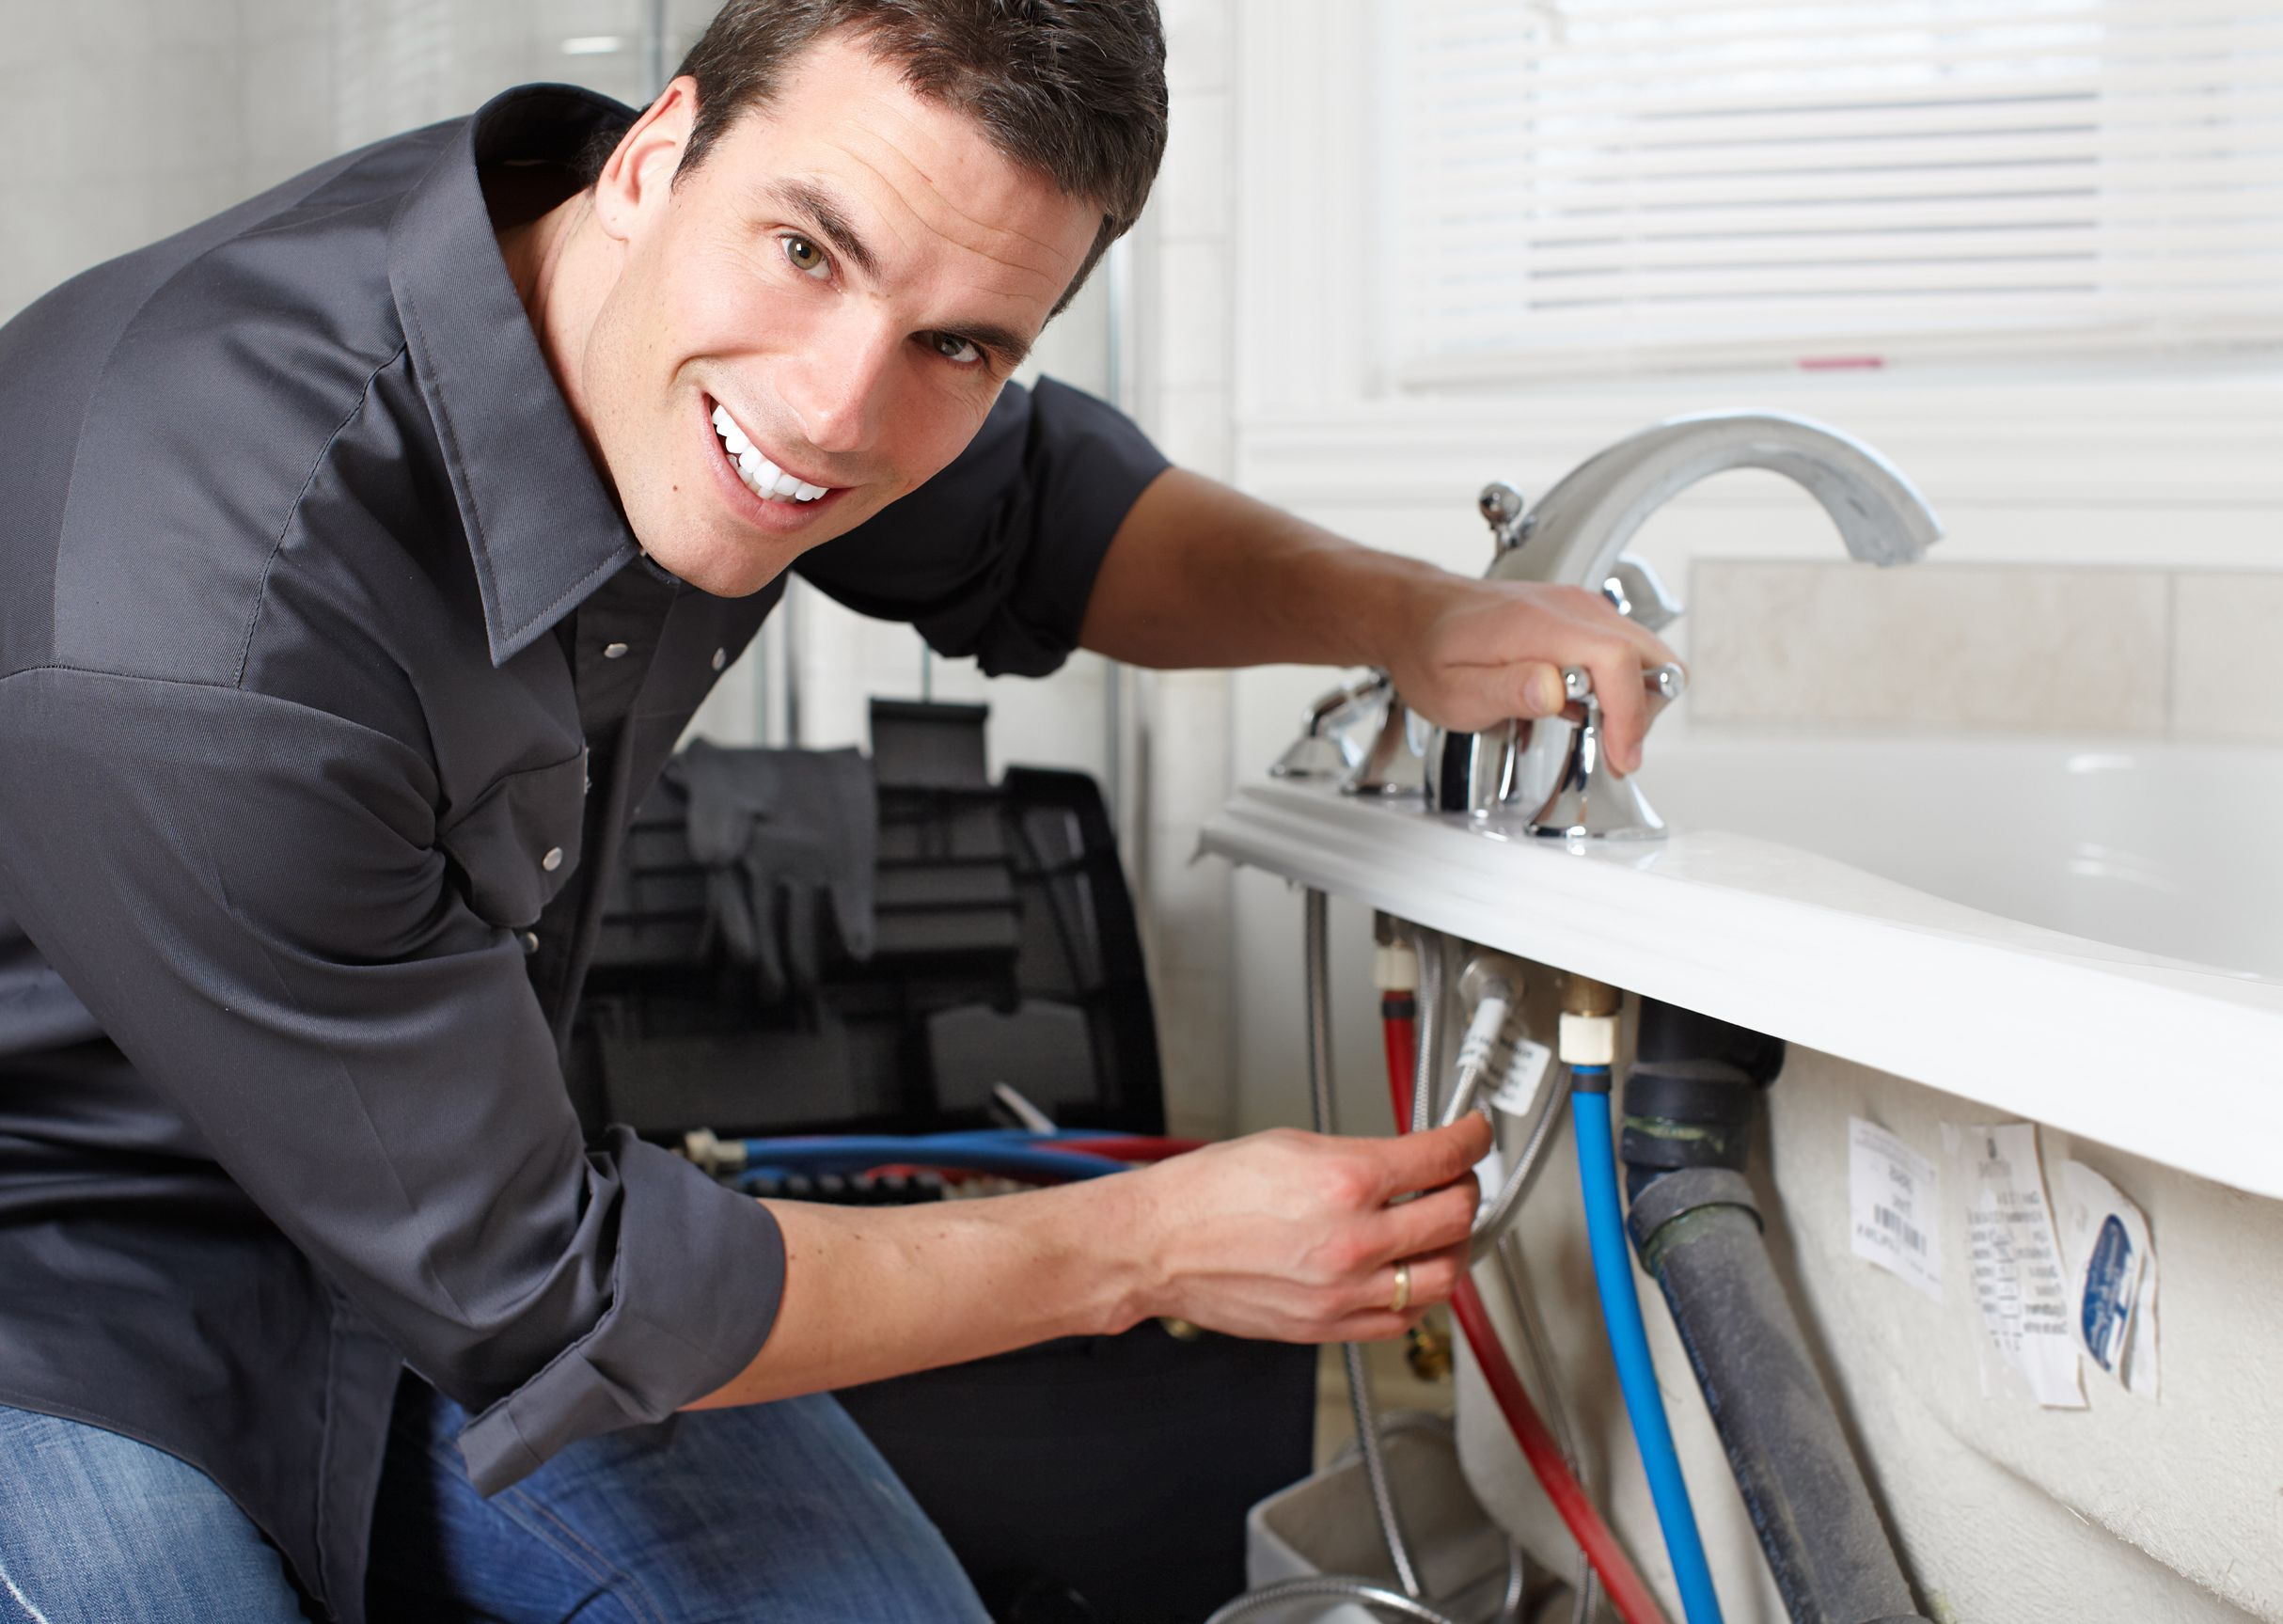 The plumbing services of Heiden include routine